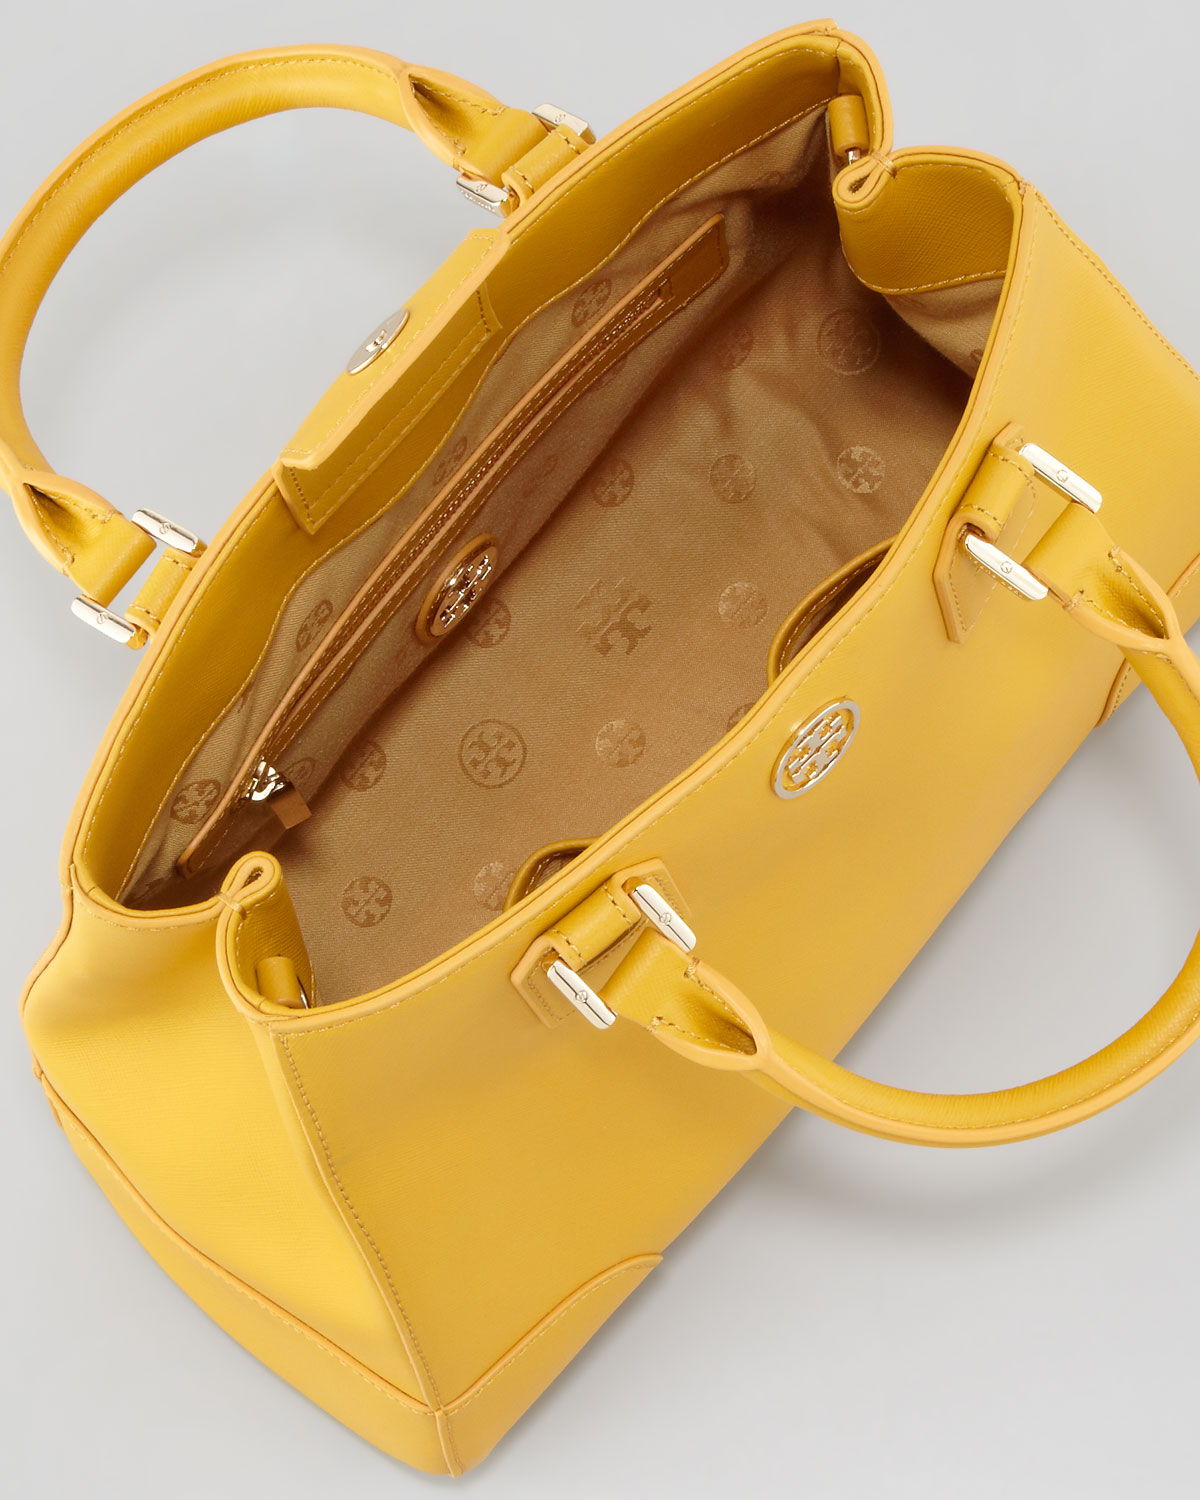 0e2dad71911 Lyst - Tory Burch Robinson Triangle Tote Bag Honey Mustard in Yellow